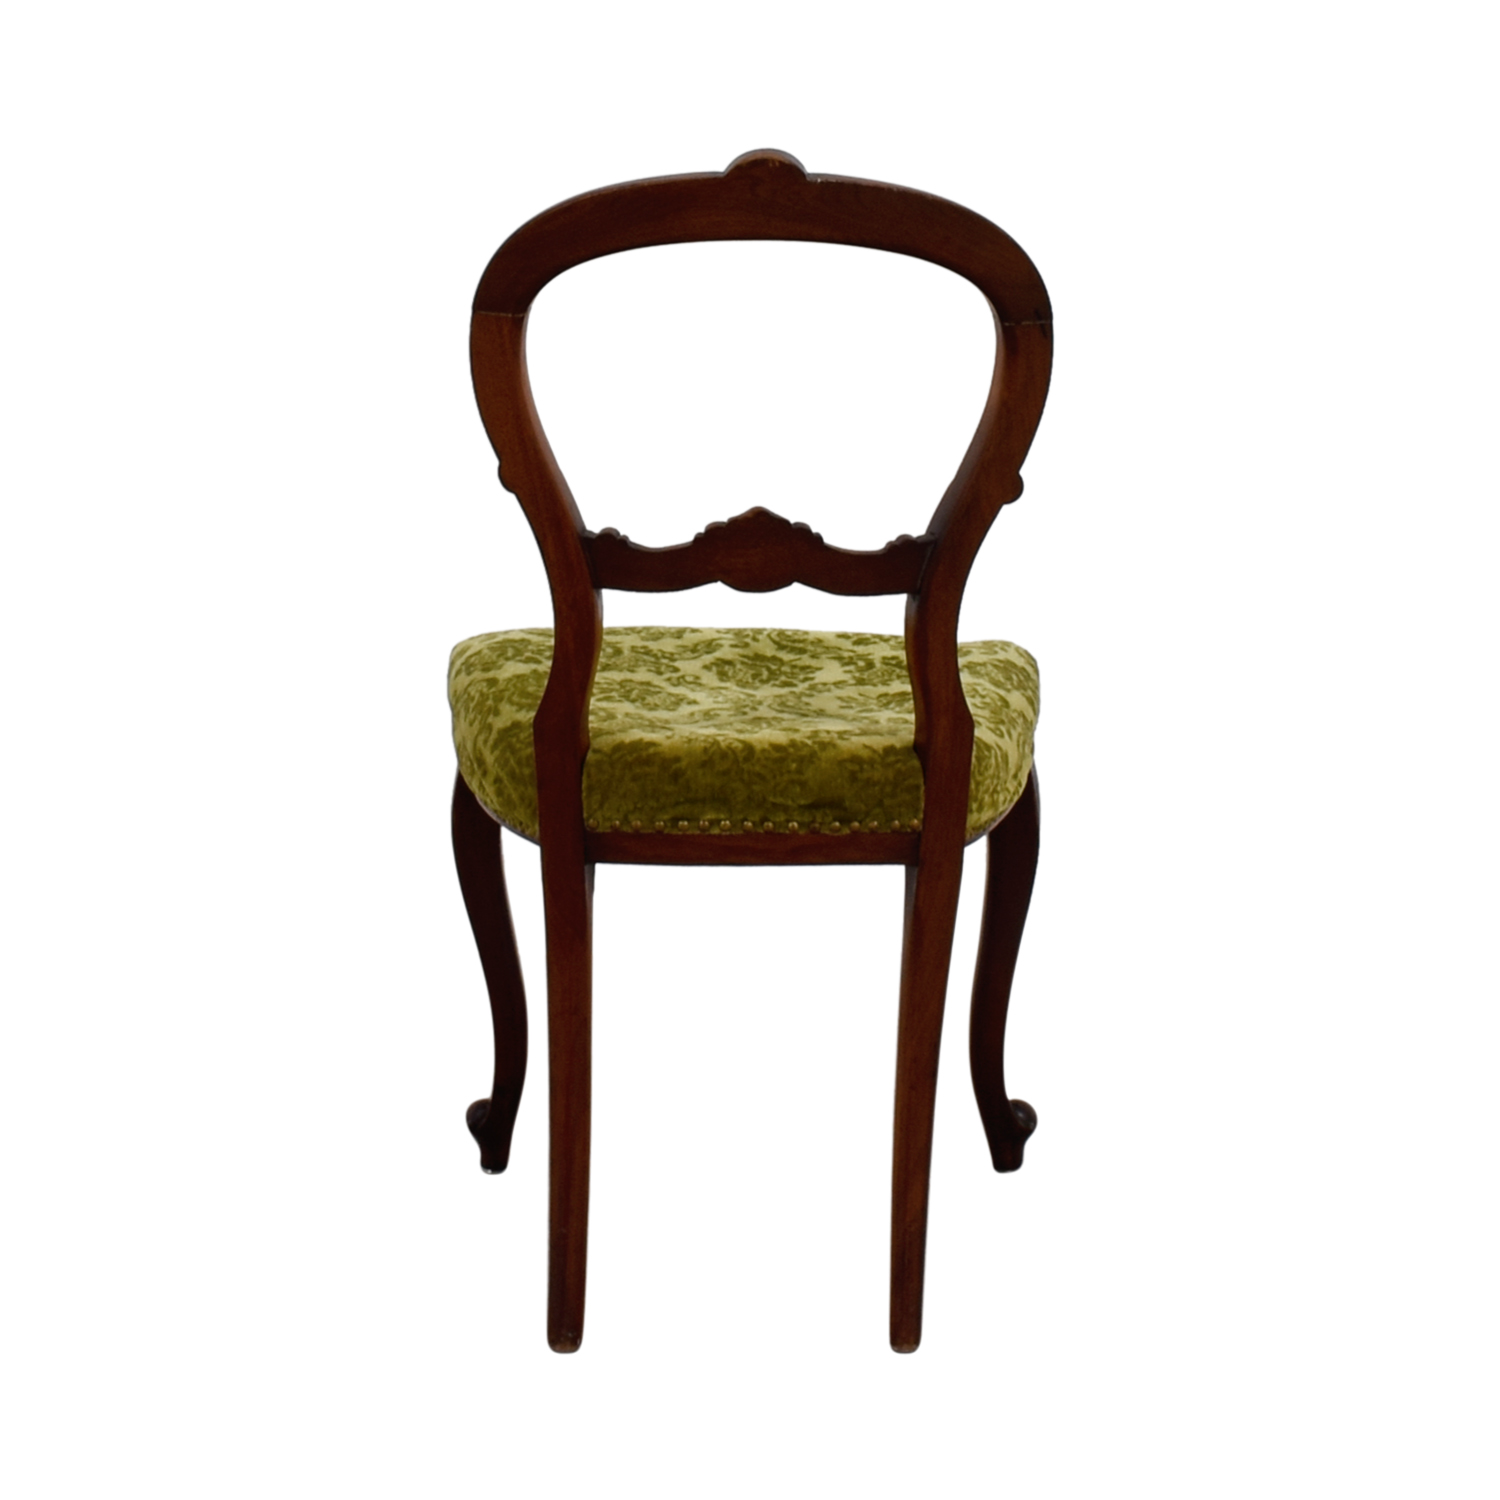 Antique Green Velvet Wood Chair for sale